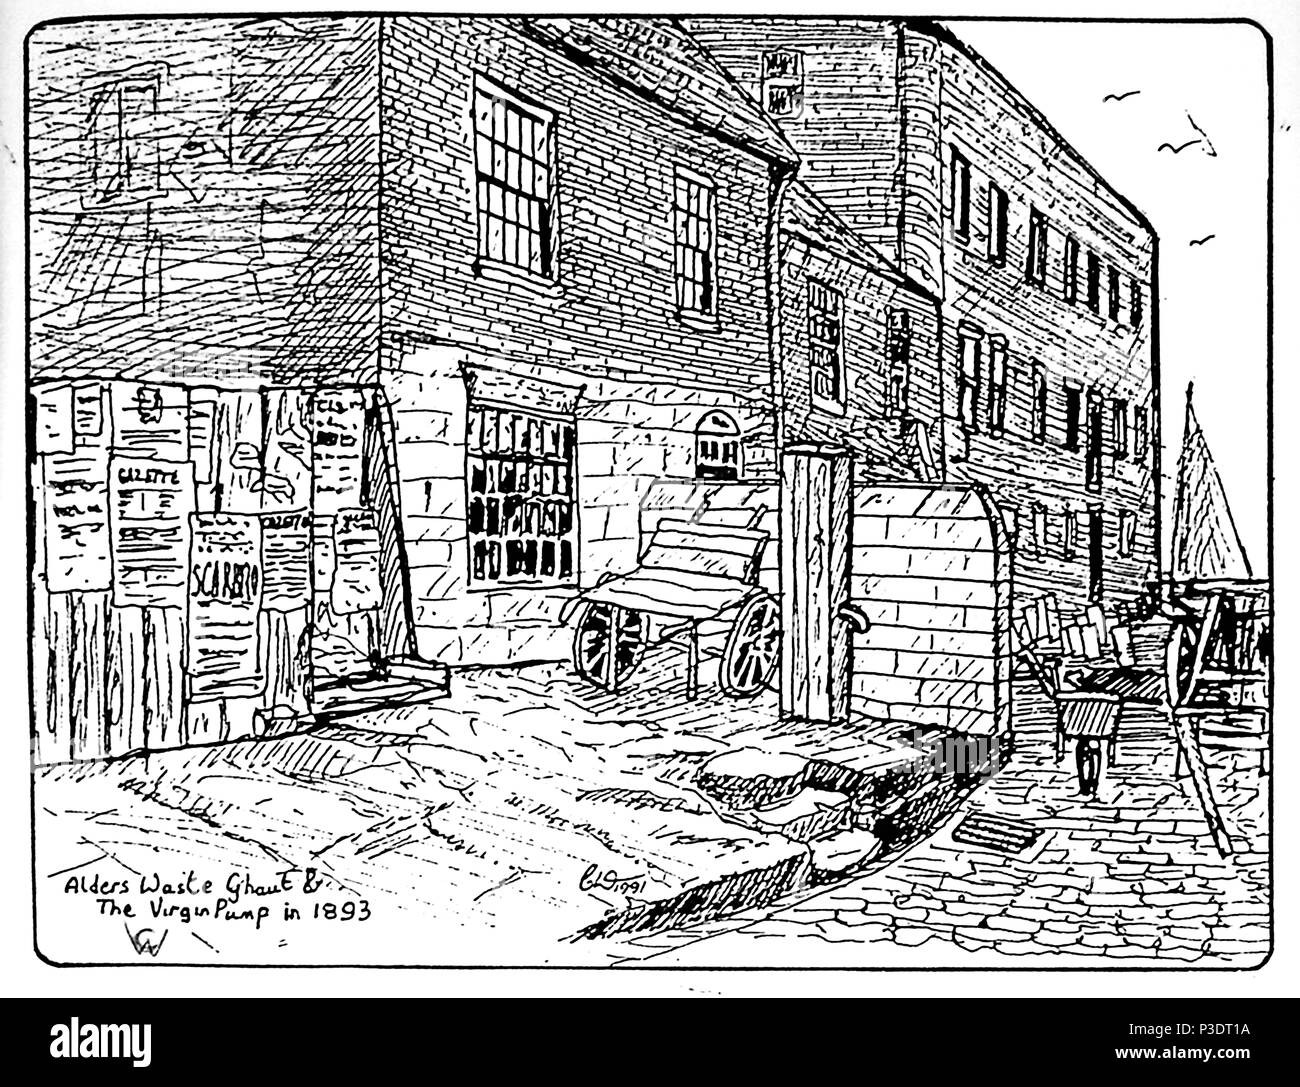 (Copyright waived) An ink sketch drawing  by Colin Waters of Alder's Waste Ghaut, Church Street  and the Virgin Pump, Whitby Yorkshire as it was in 1893 when Harker's Jet Merchant's and Stamp's Coal merchants had premises there. The public pump bore the inscription Antlia pro bono publico.. The hoarding marks the site of the former  Crown and Anchor, public house. The slipway is still in existence in 2018 - Stock Image